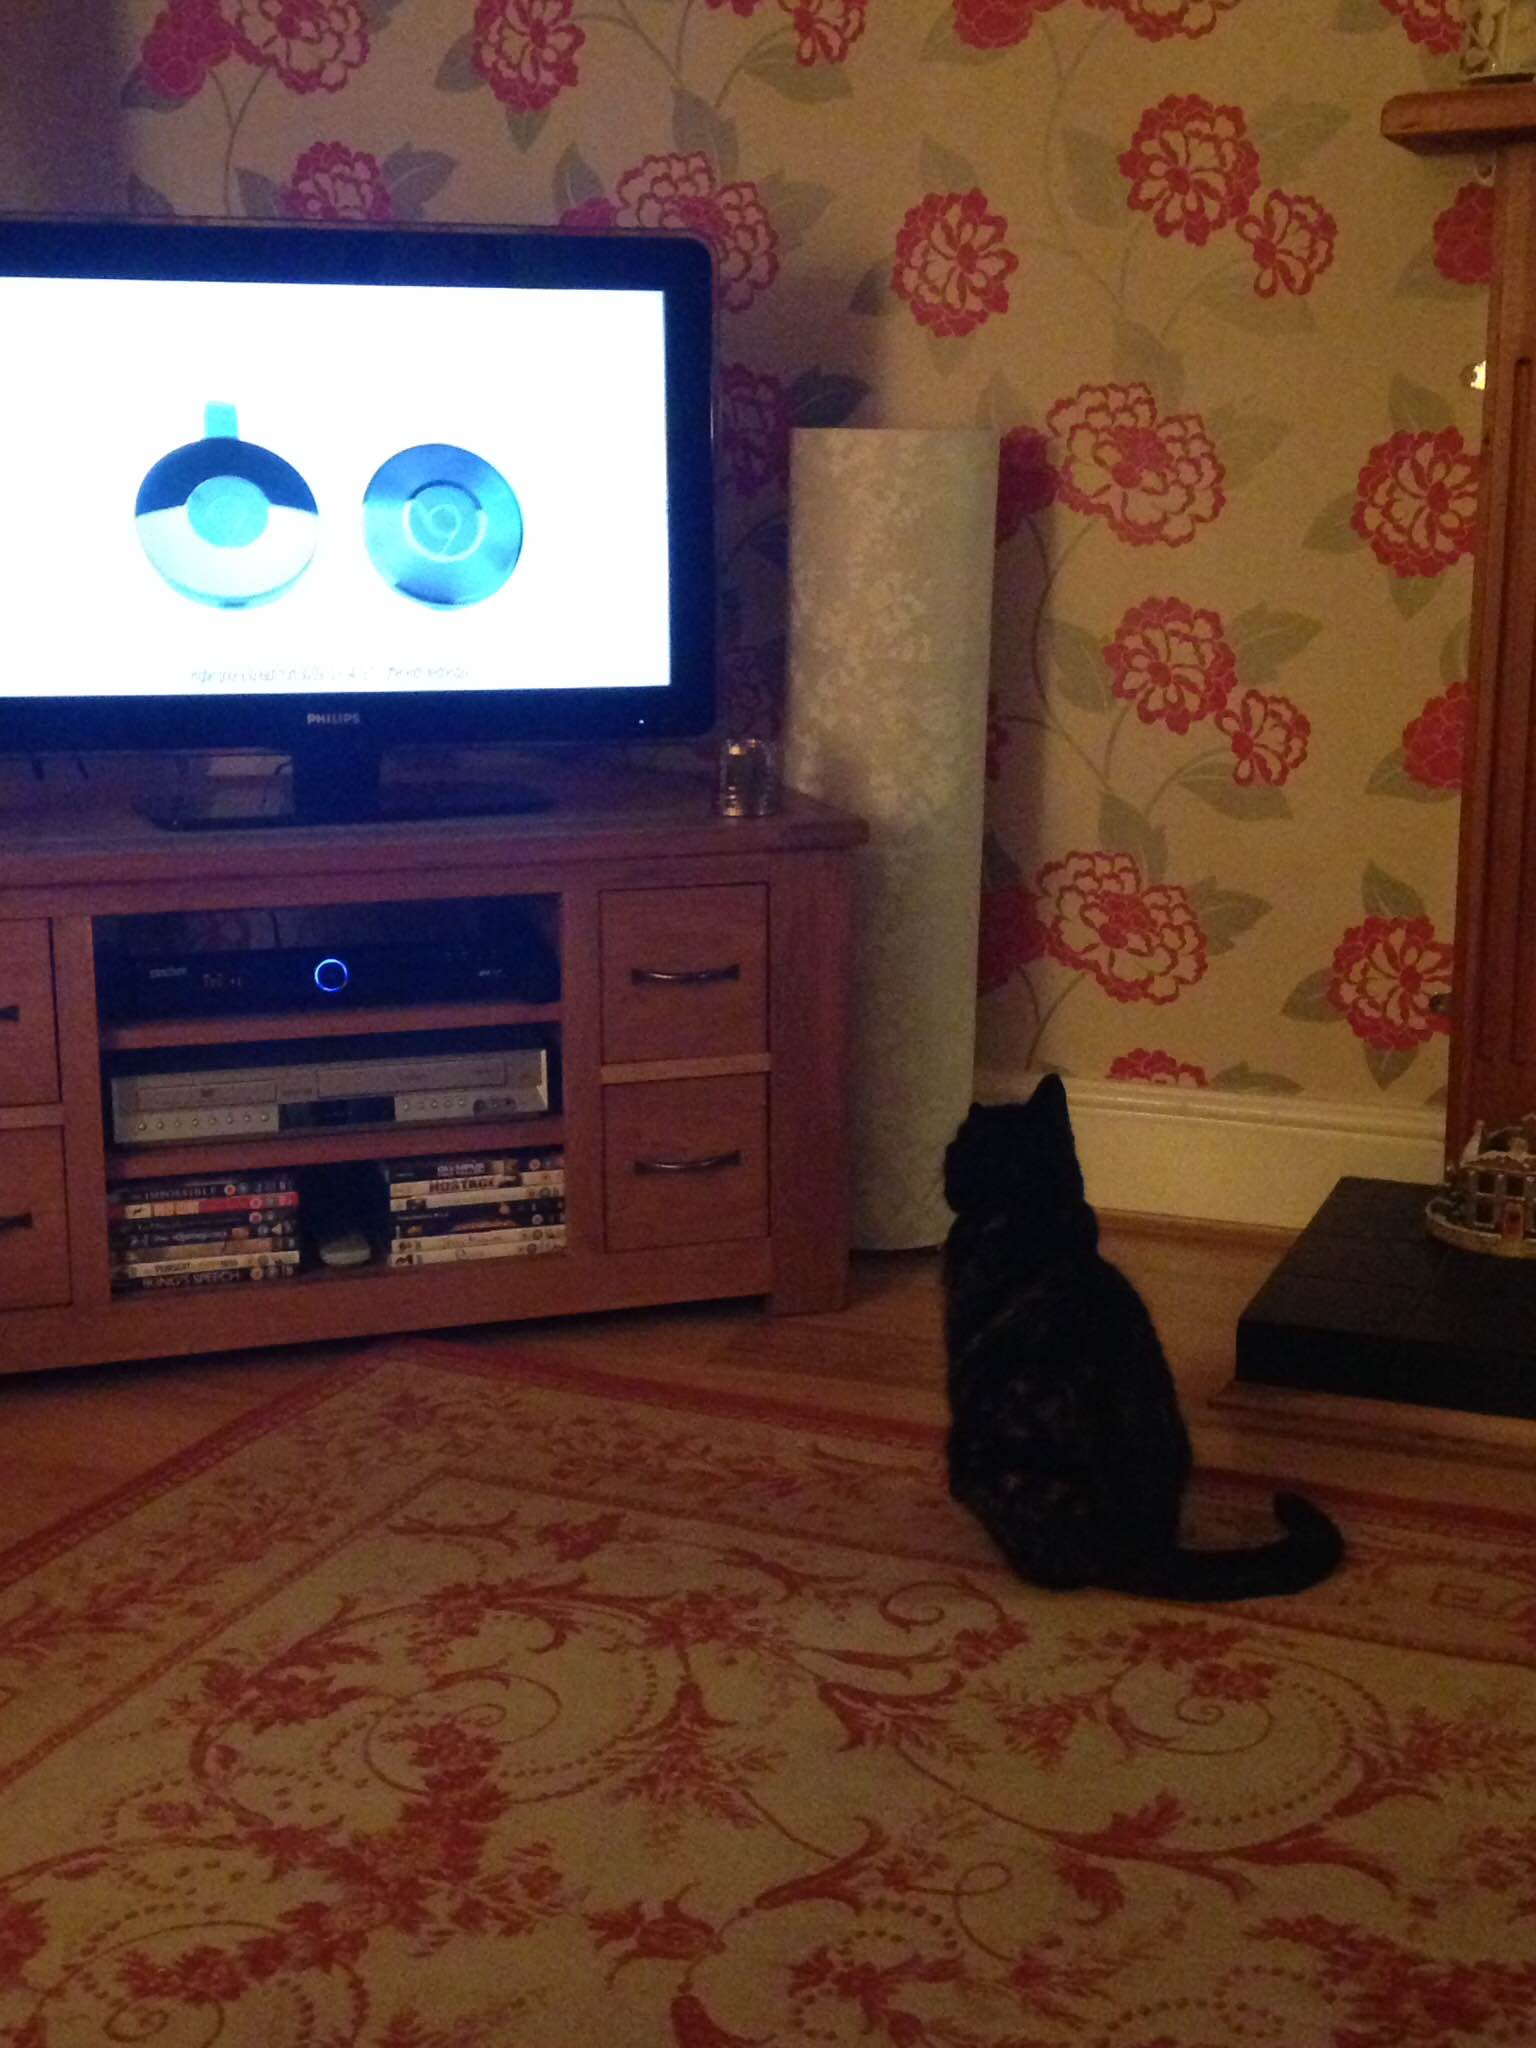 Bad lighting, but couldn't resist snapping this of Maisy really enjoying the TV!